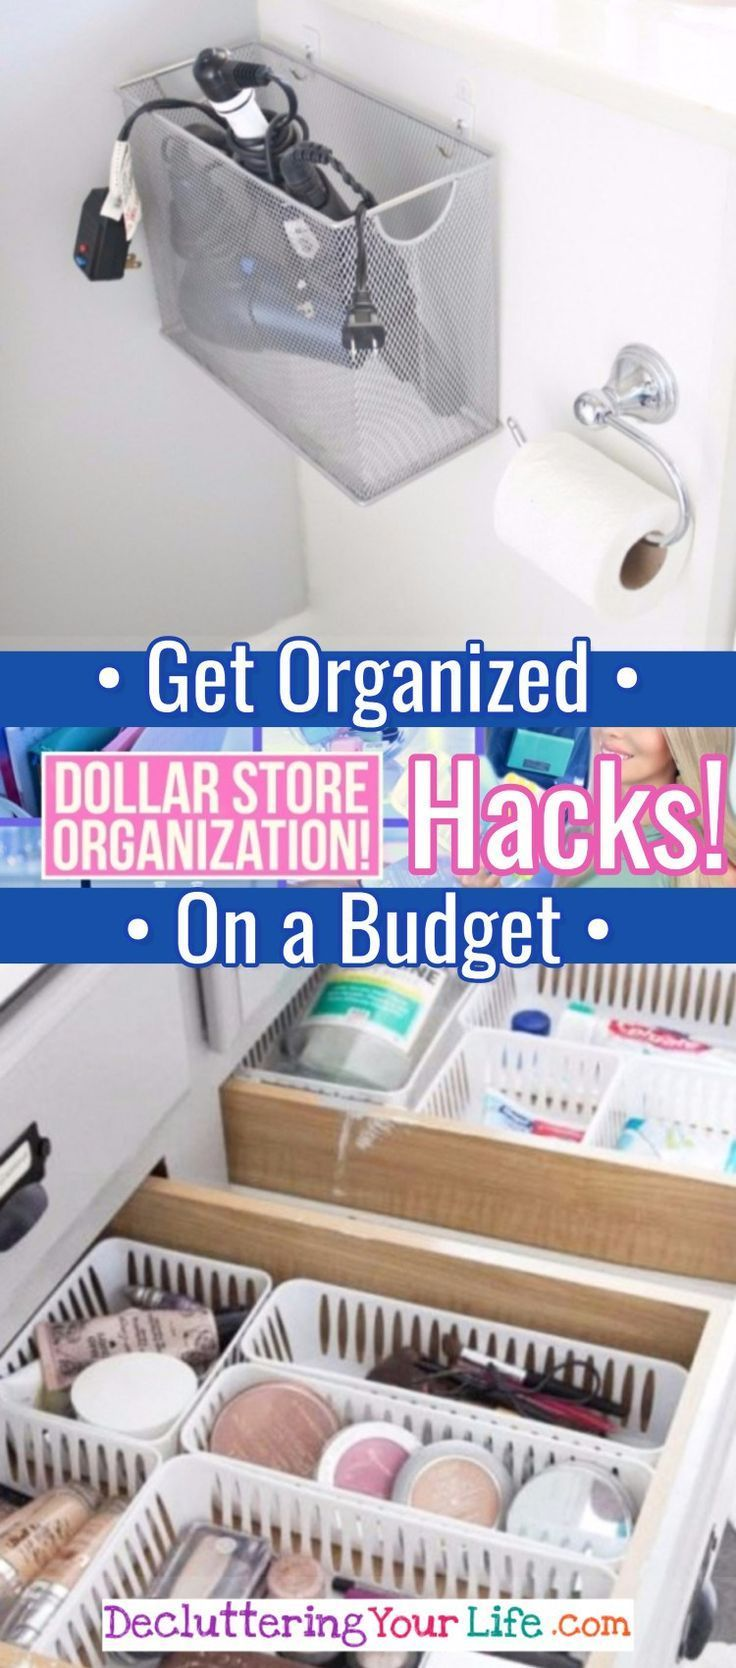 Awesome Dollar Store Amp Dollar Tree Organization Hacks For Organizing Your Home On A Budget In